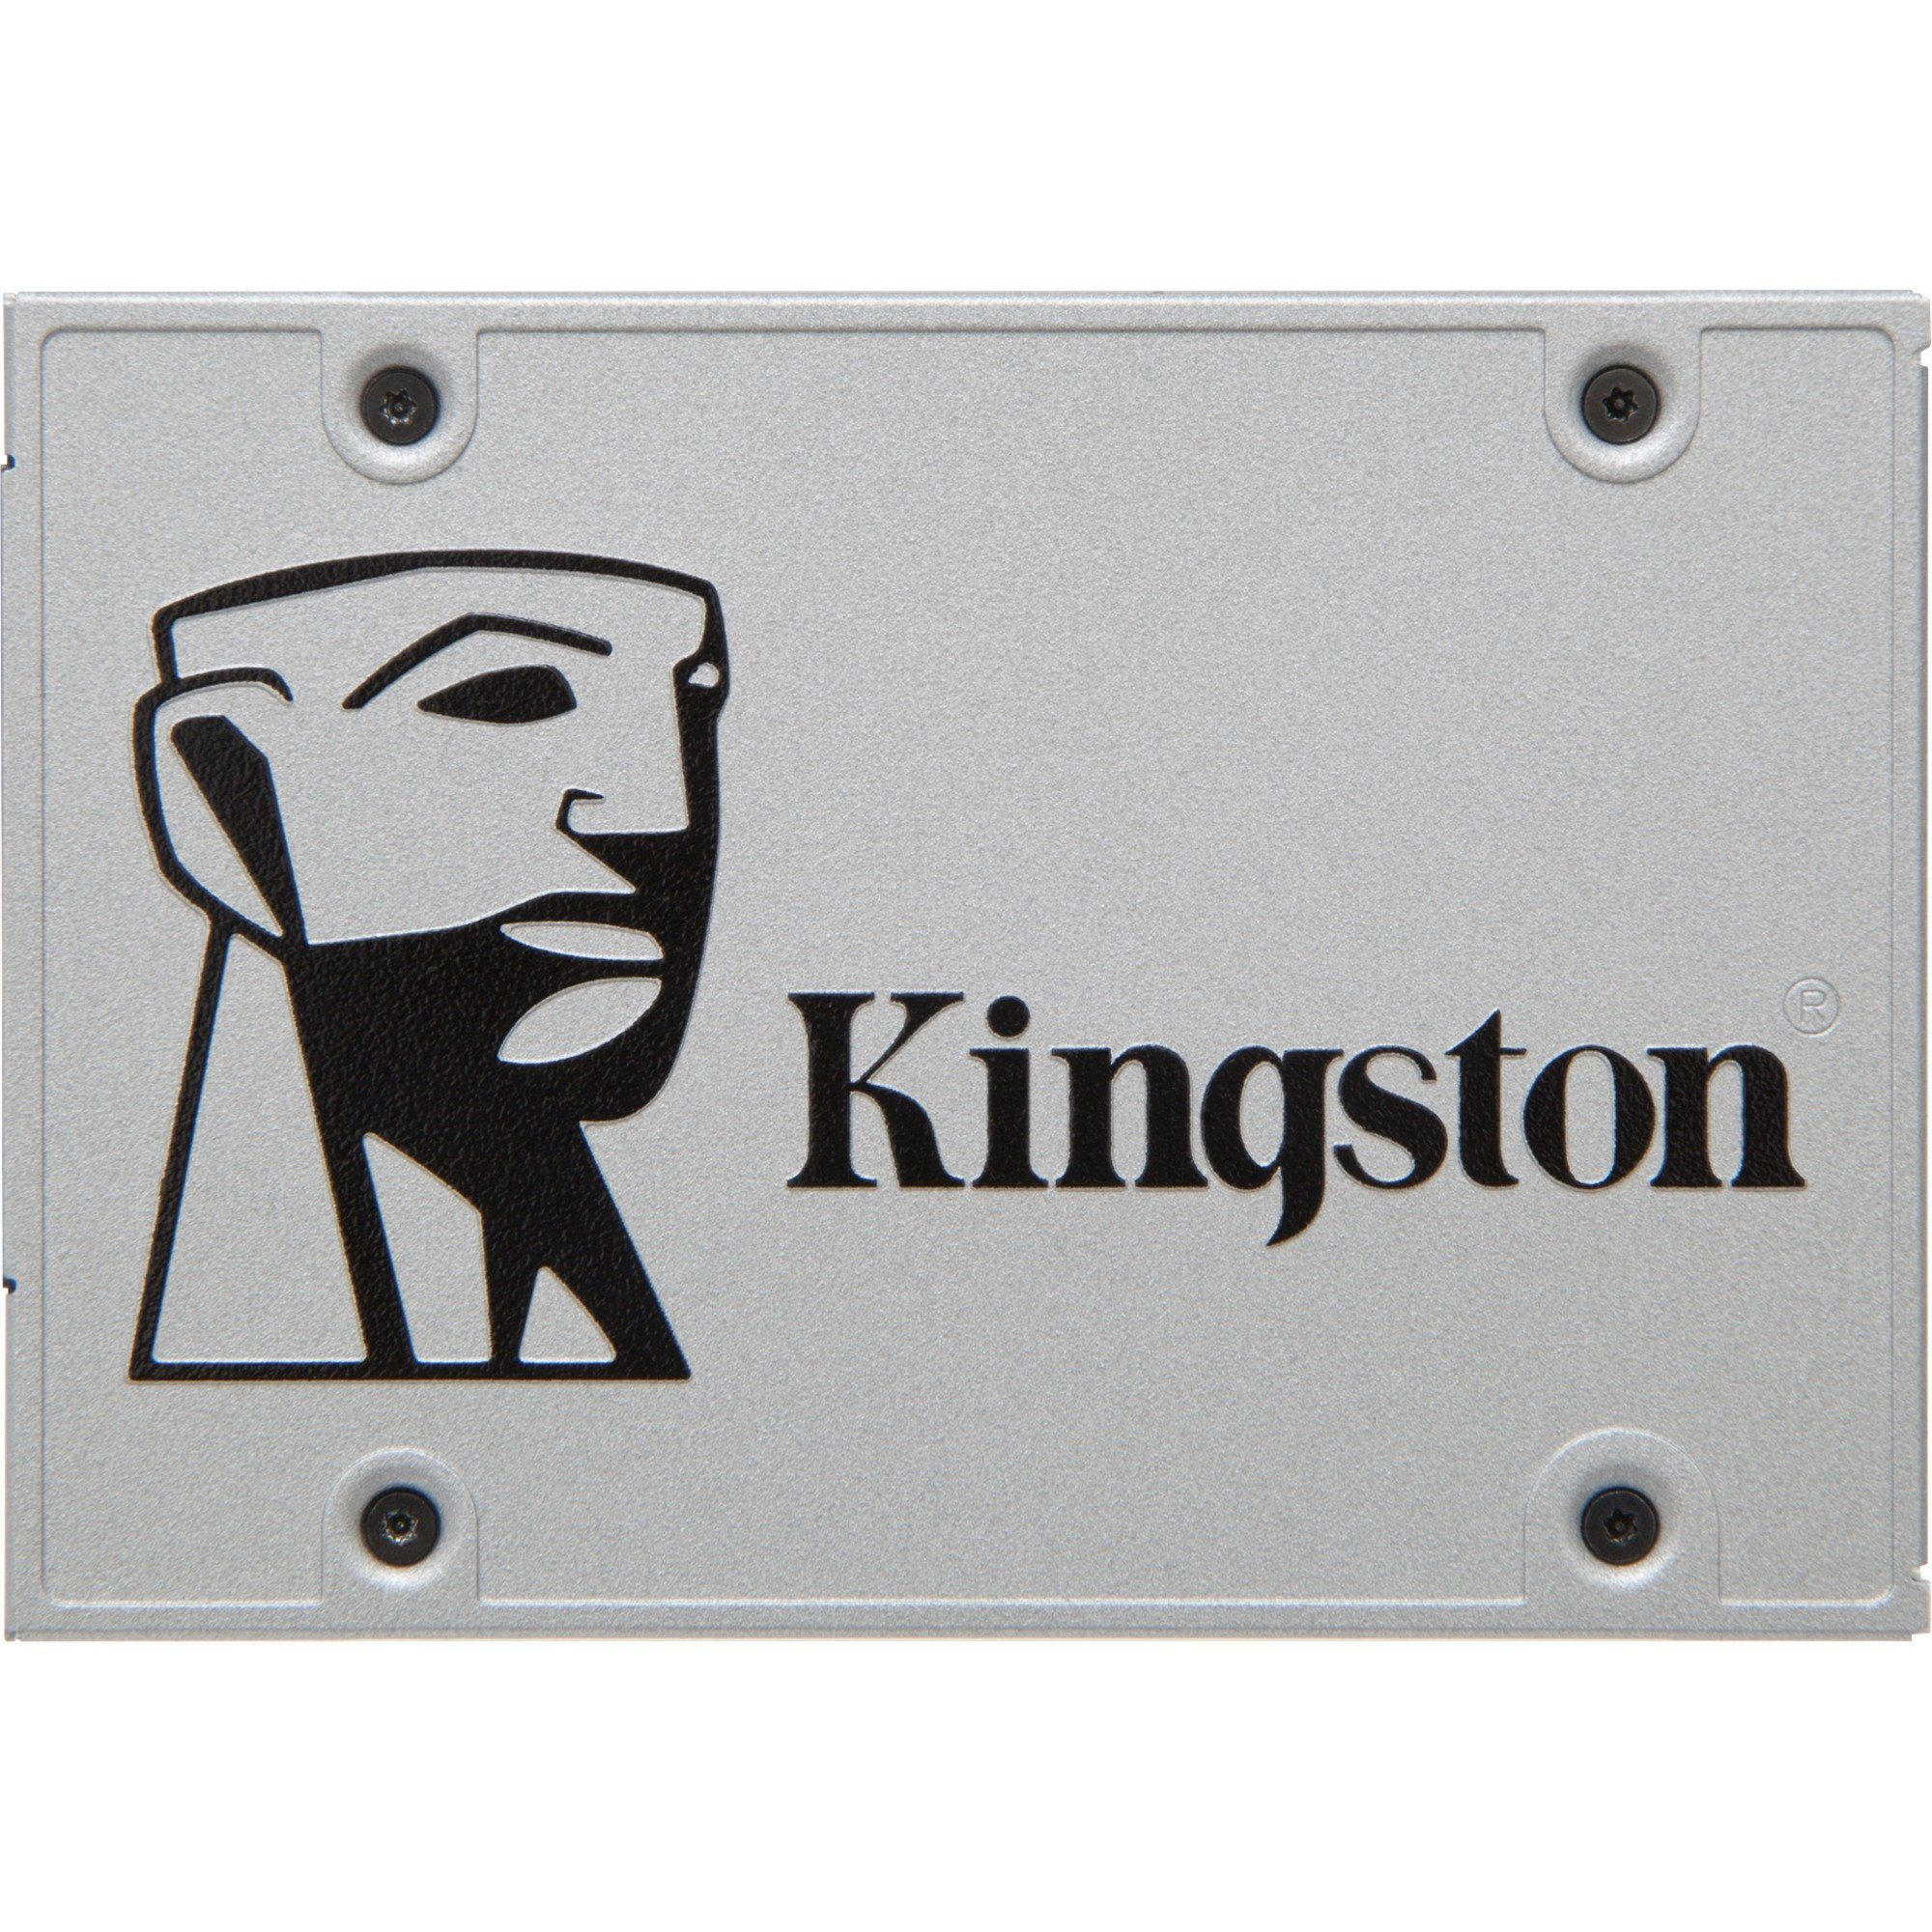 Kingston Solid State Drive »SUV400S3B7A/480G 480 GB Kit«